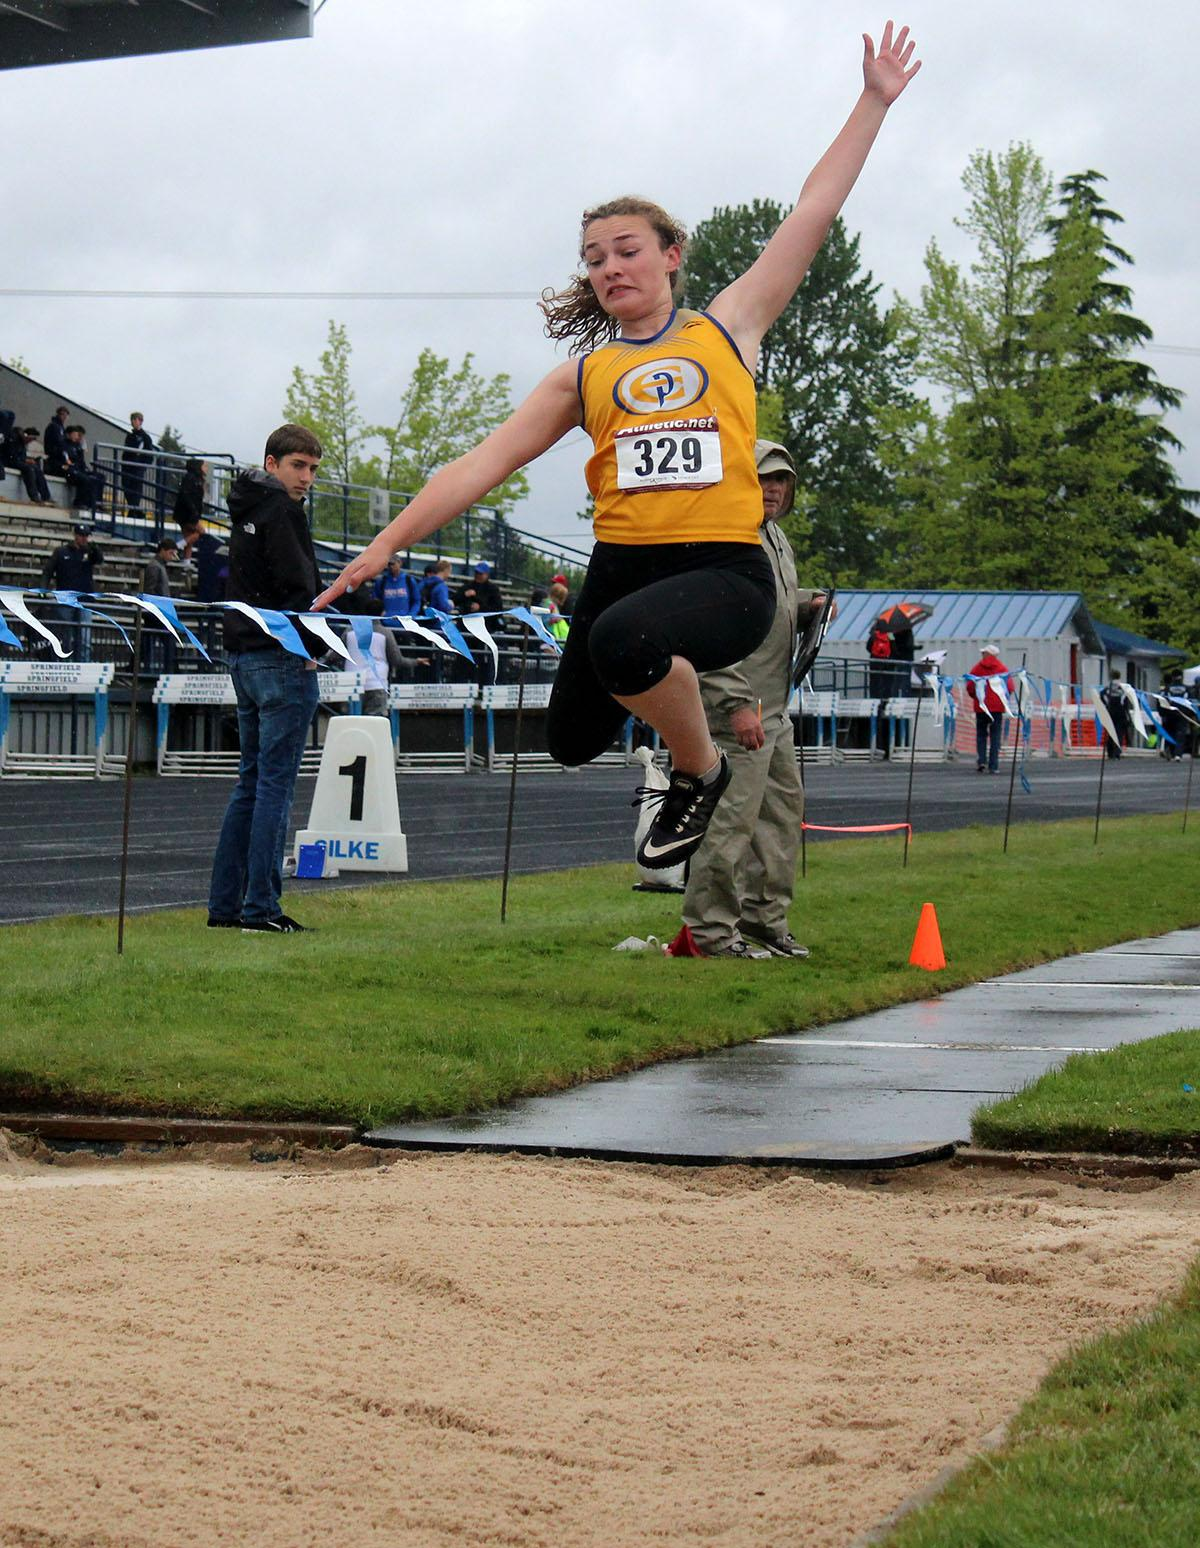 A triple jumper gives it her all at the 5A-3 Midwestern League District Track Championship meet. Photo by Elle Page, Oregon News Lab